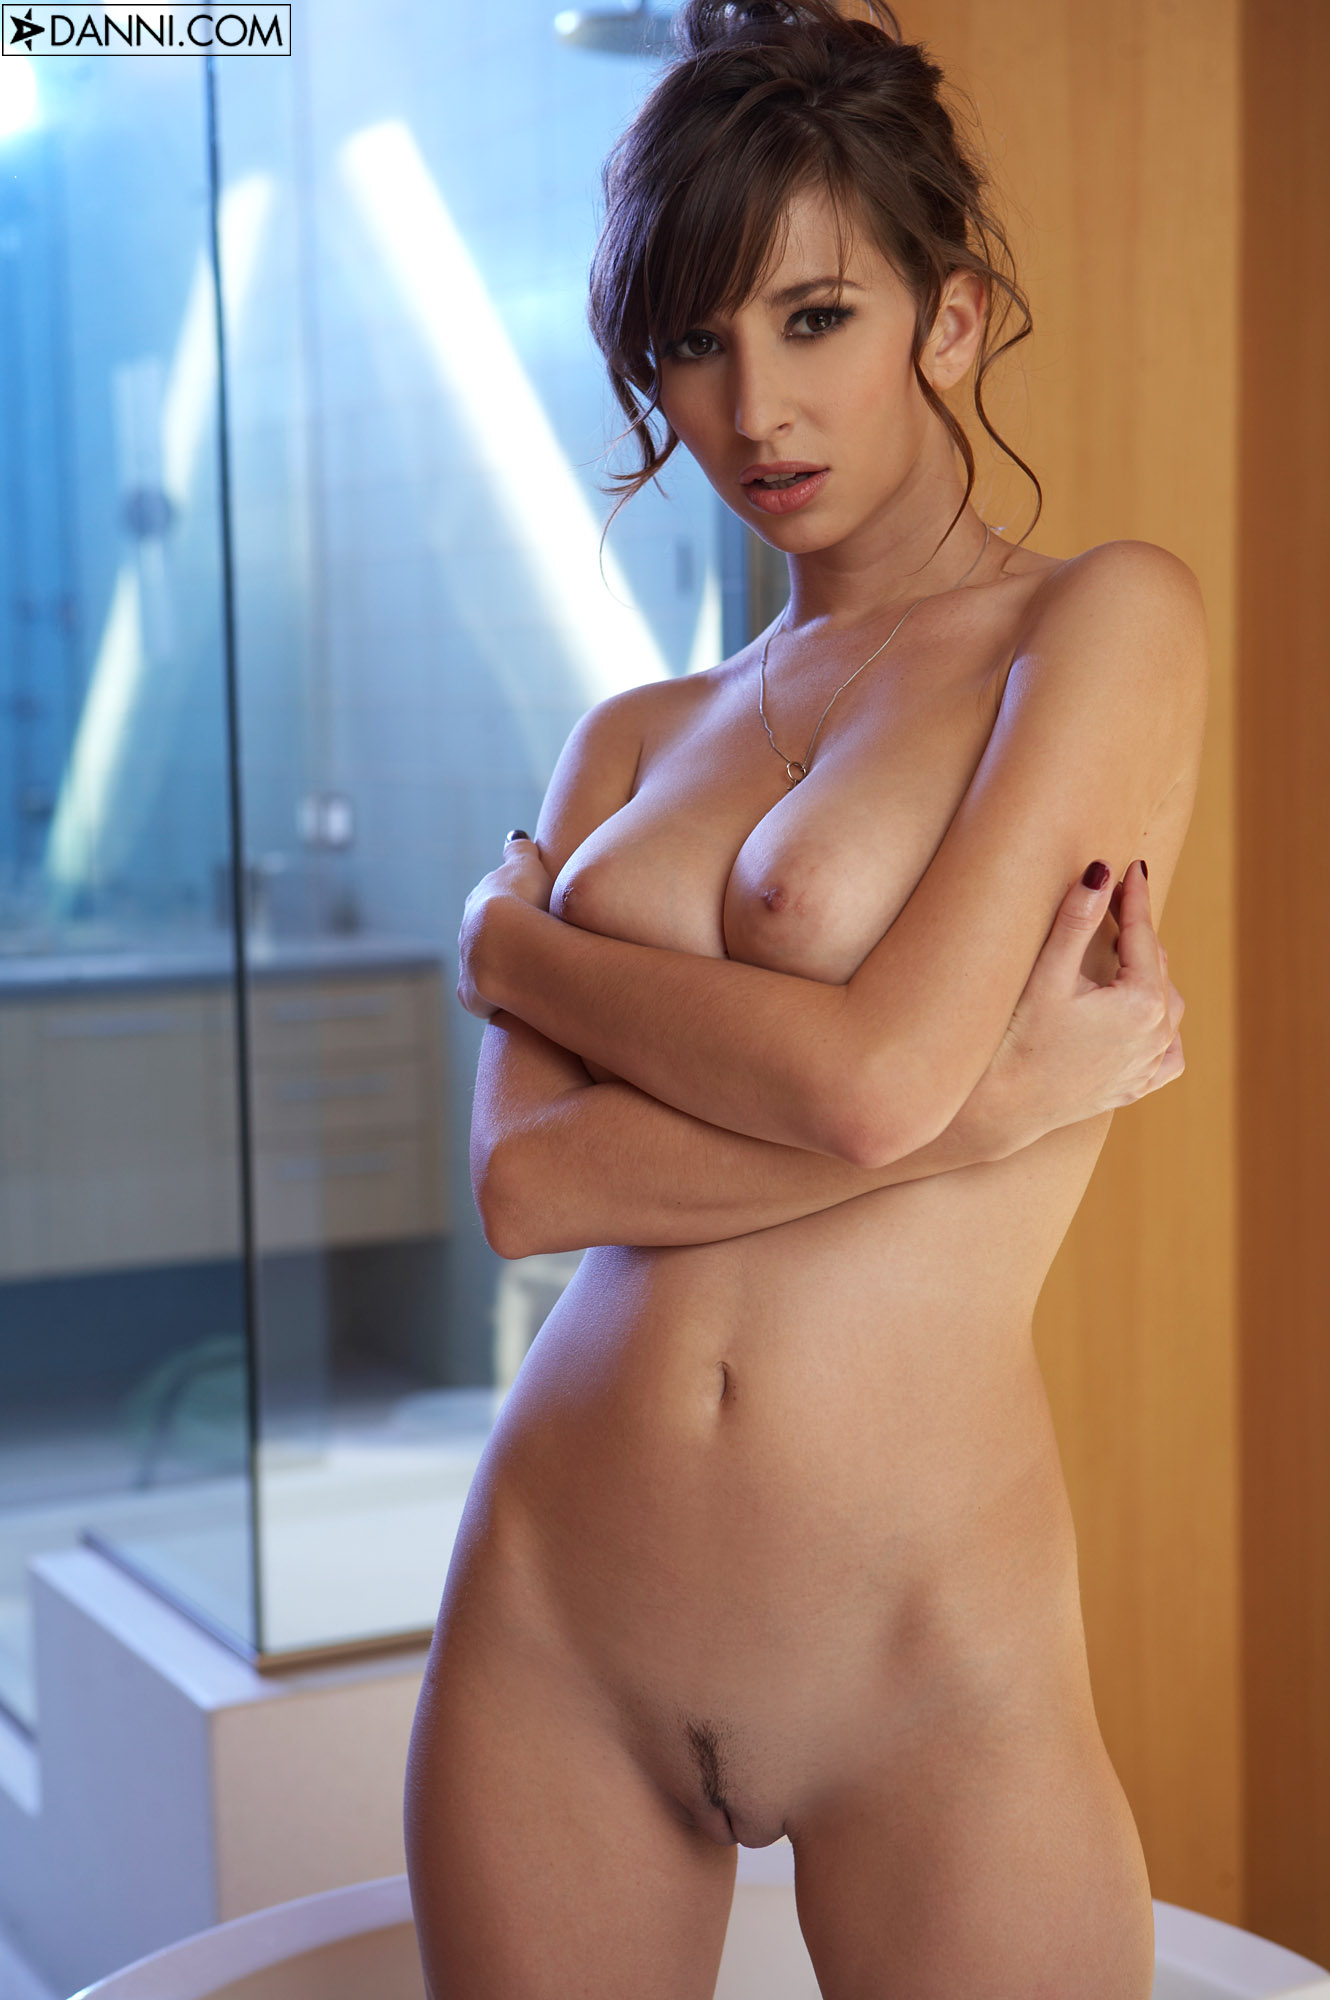 Congratulate, Shay laren nude well